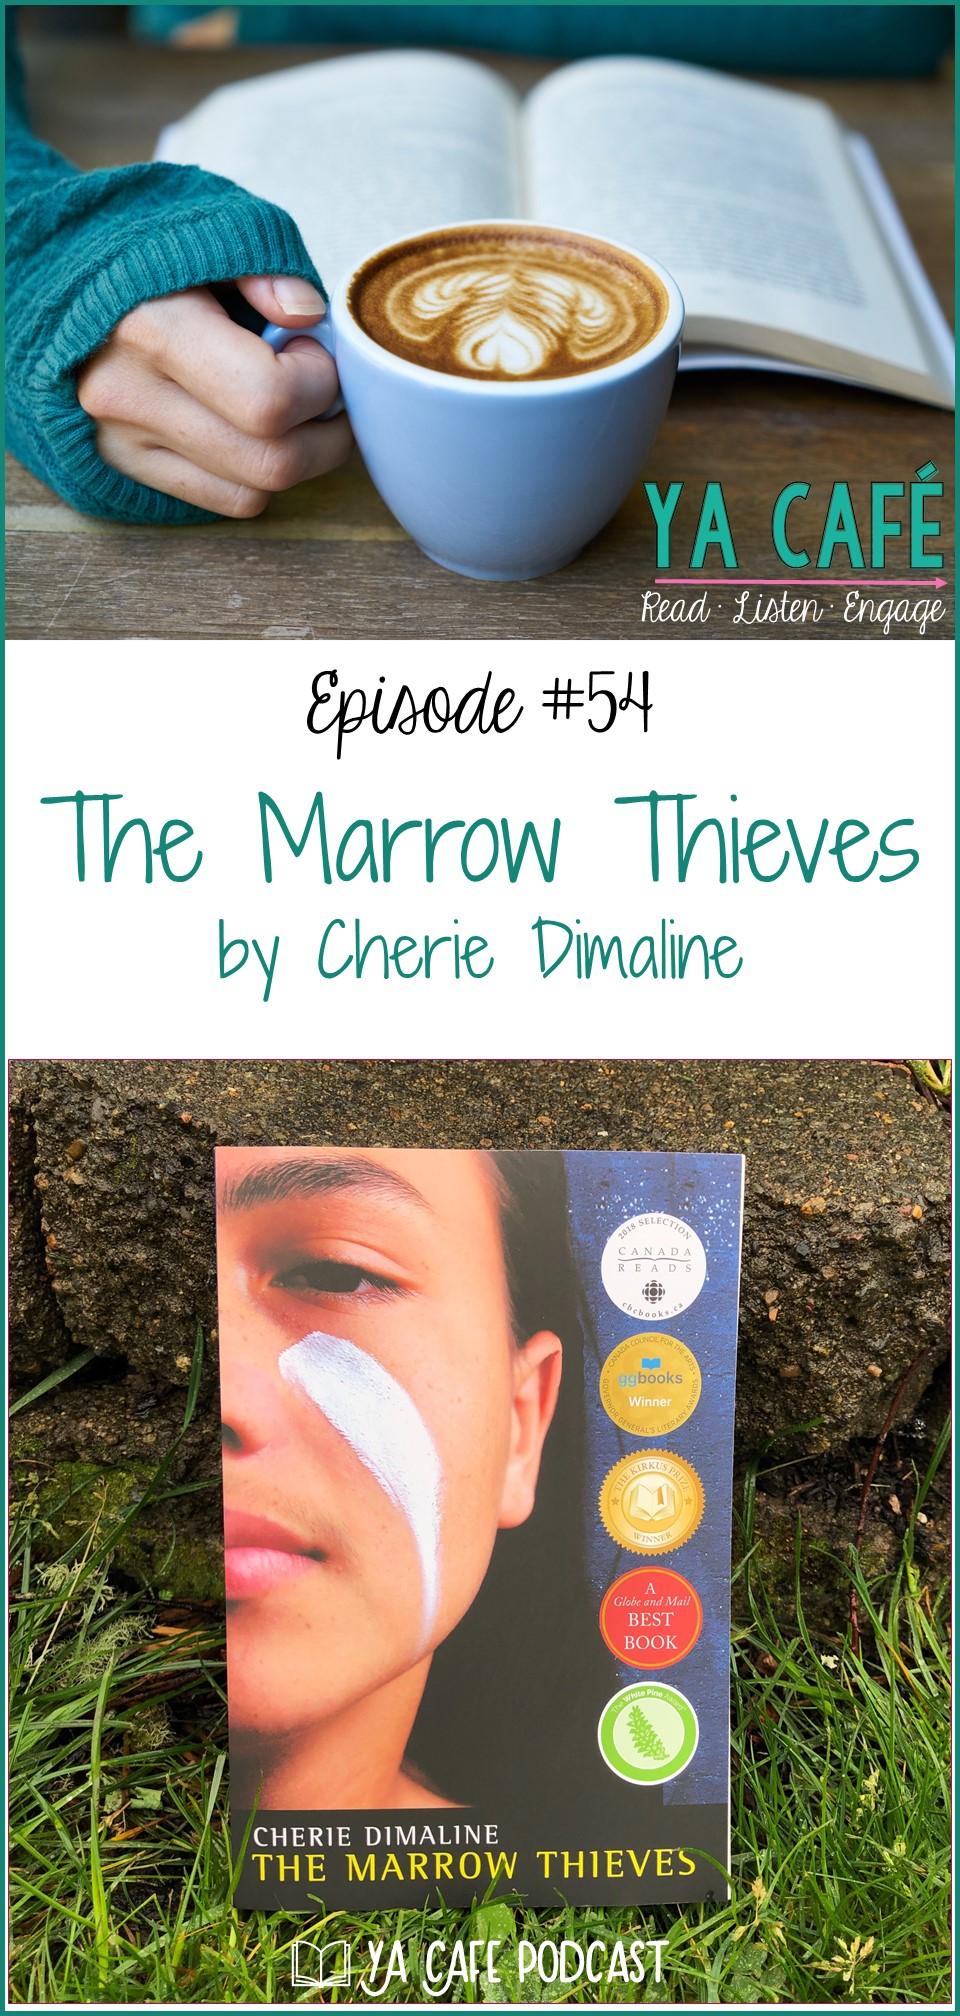 54 The Marrow Thieves by Cherie Dimaline